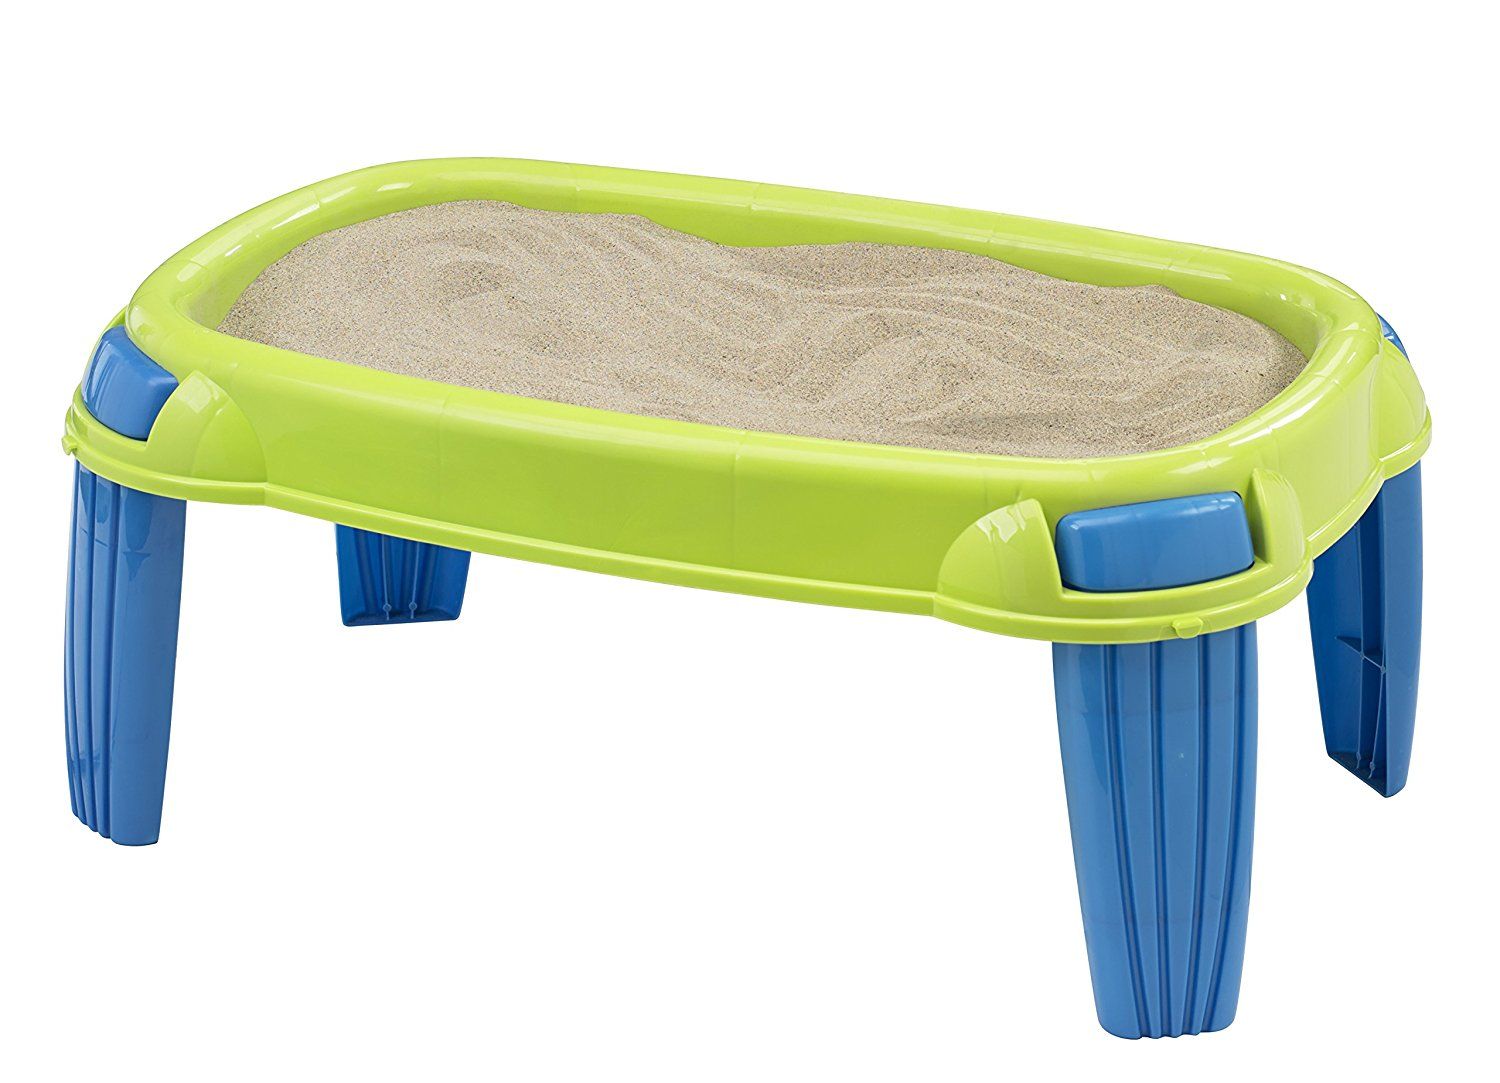 Great American Plastic Toys Sand Table